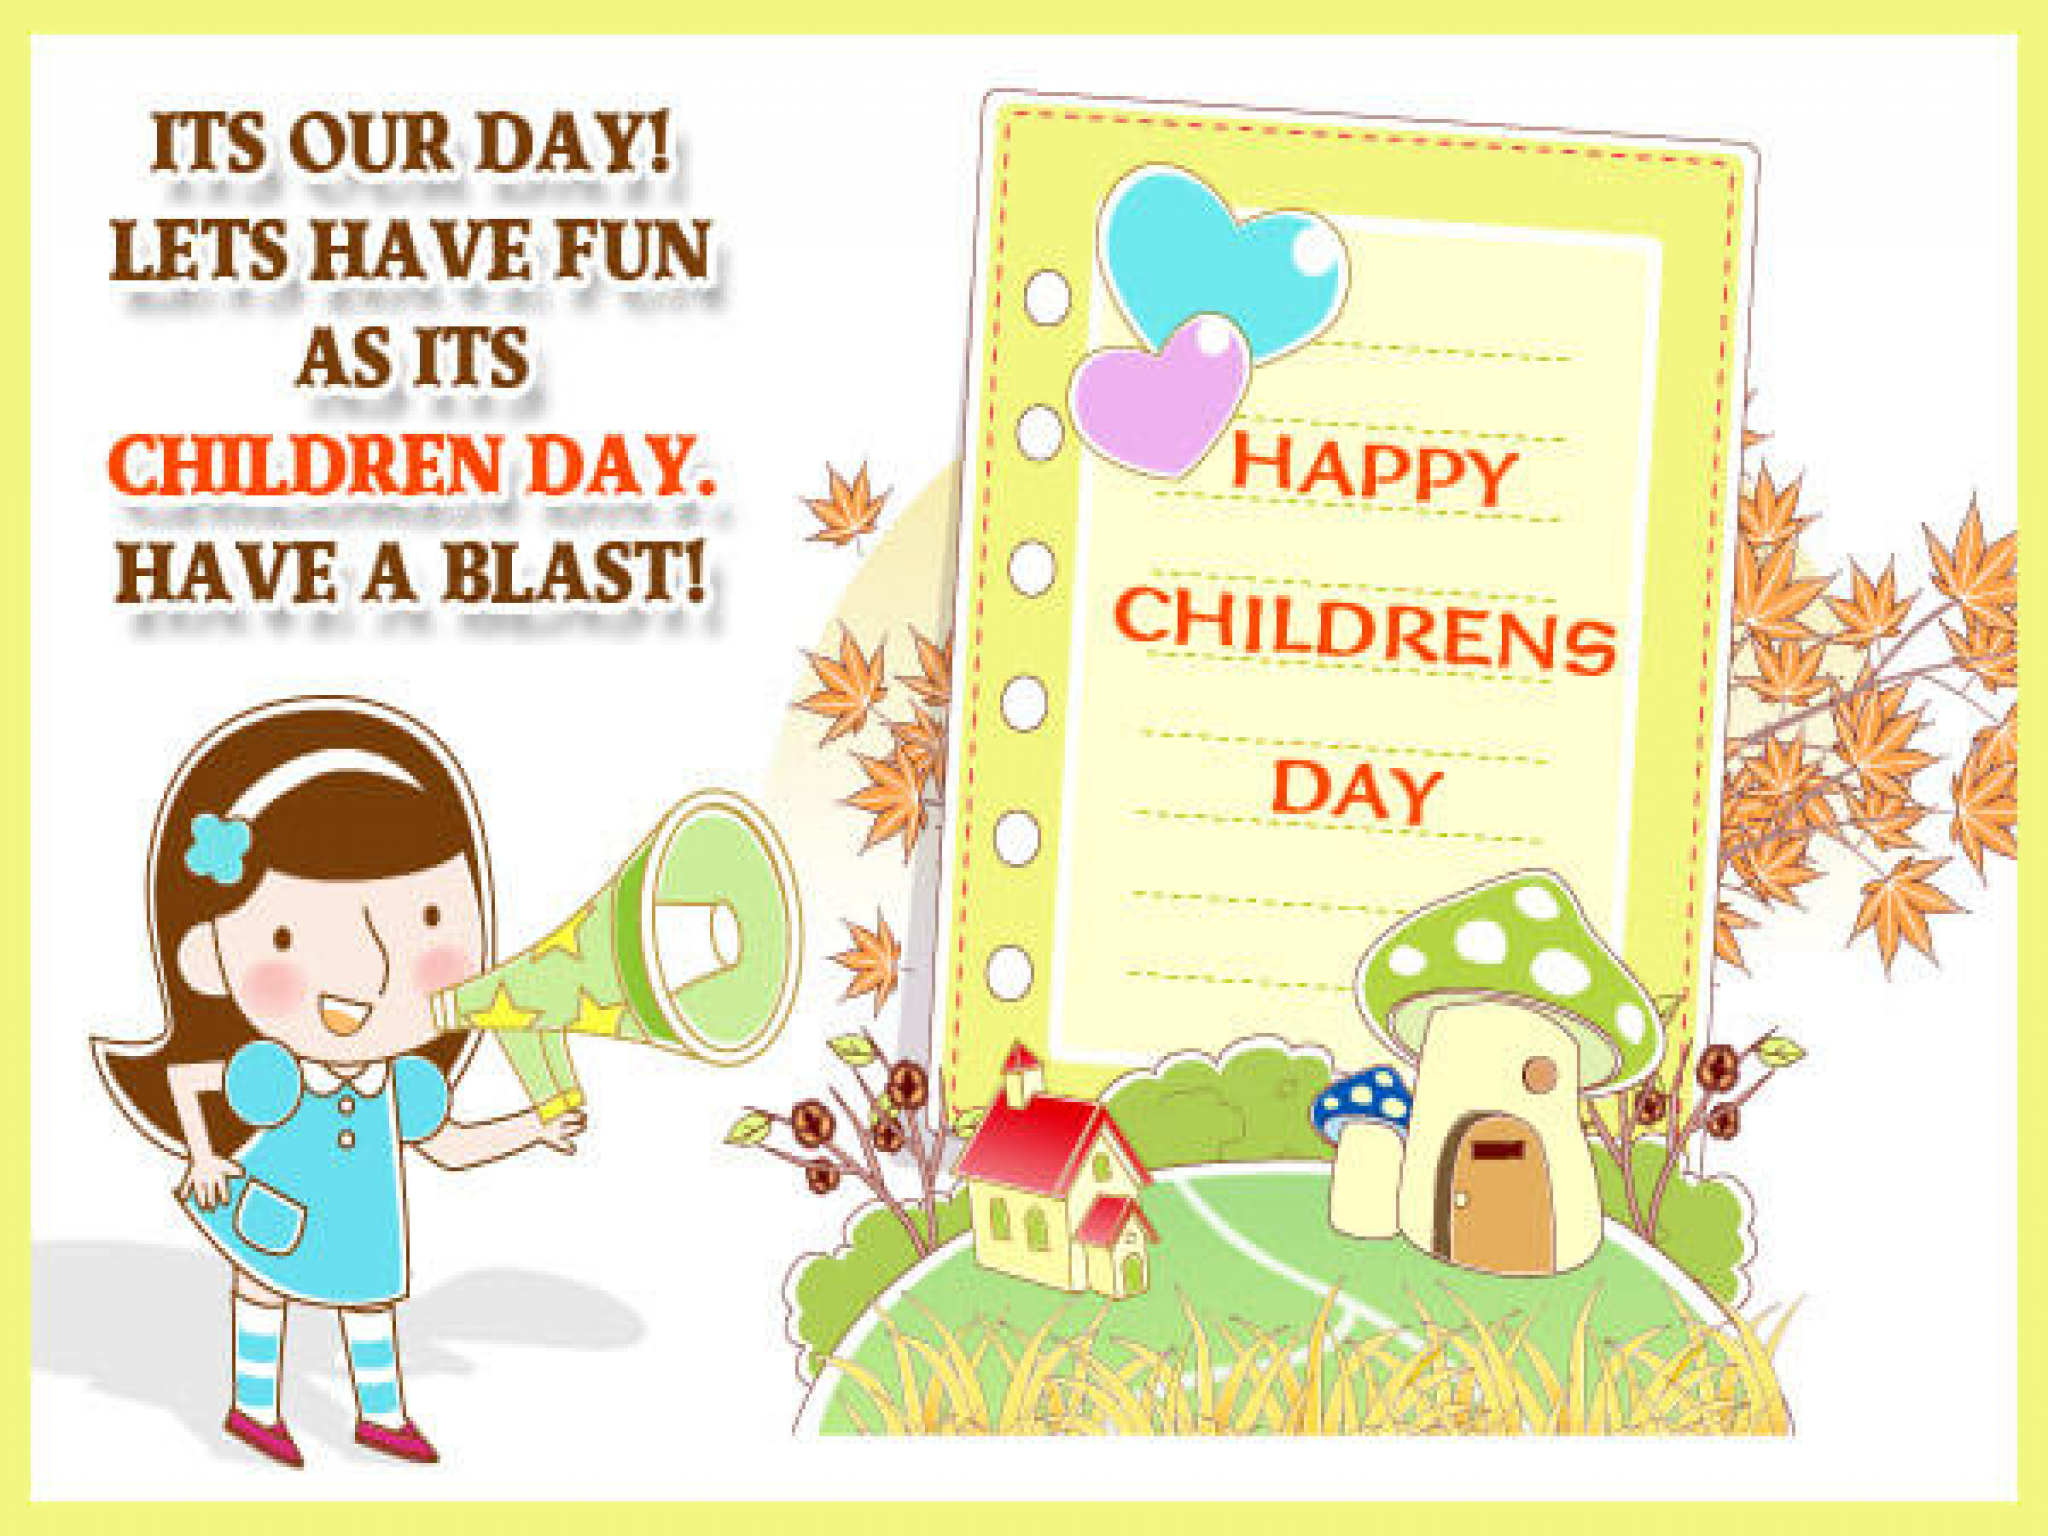 Childrens day wallpapers free download childrens day fun blast whats app image kristyandbryce Images